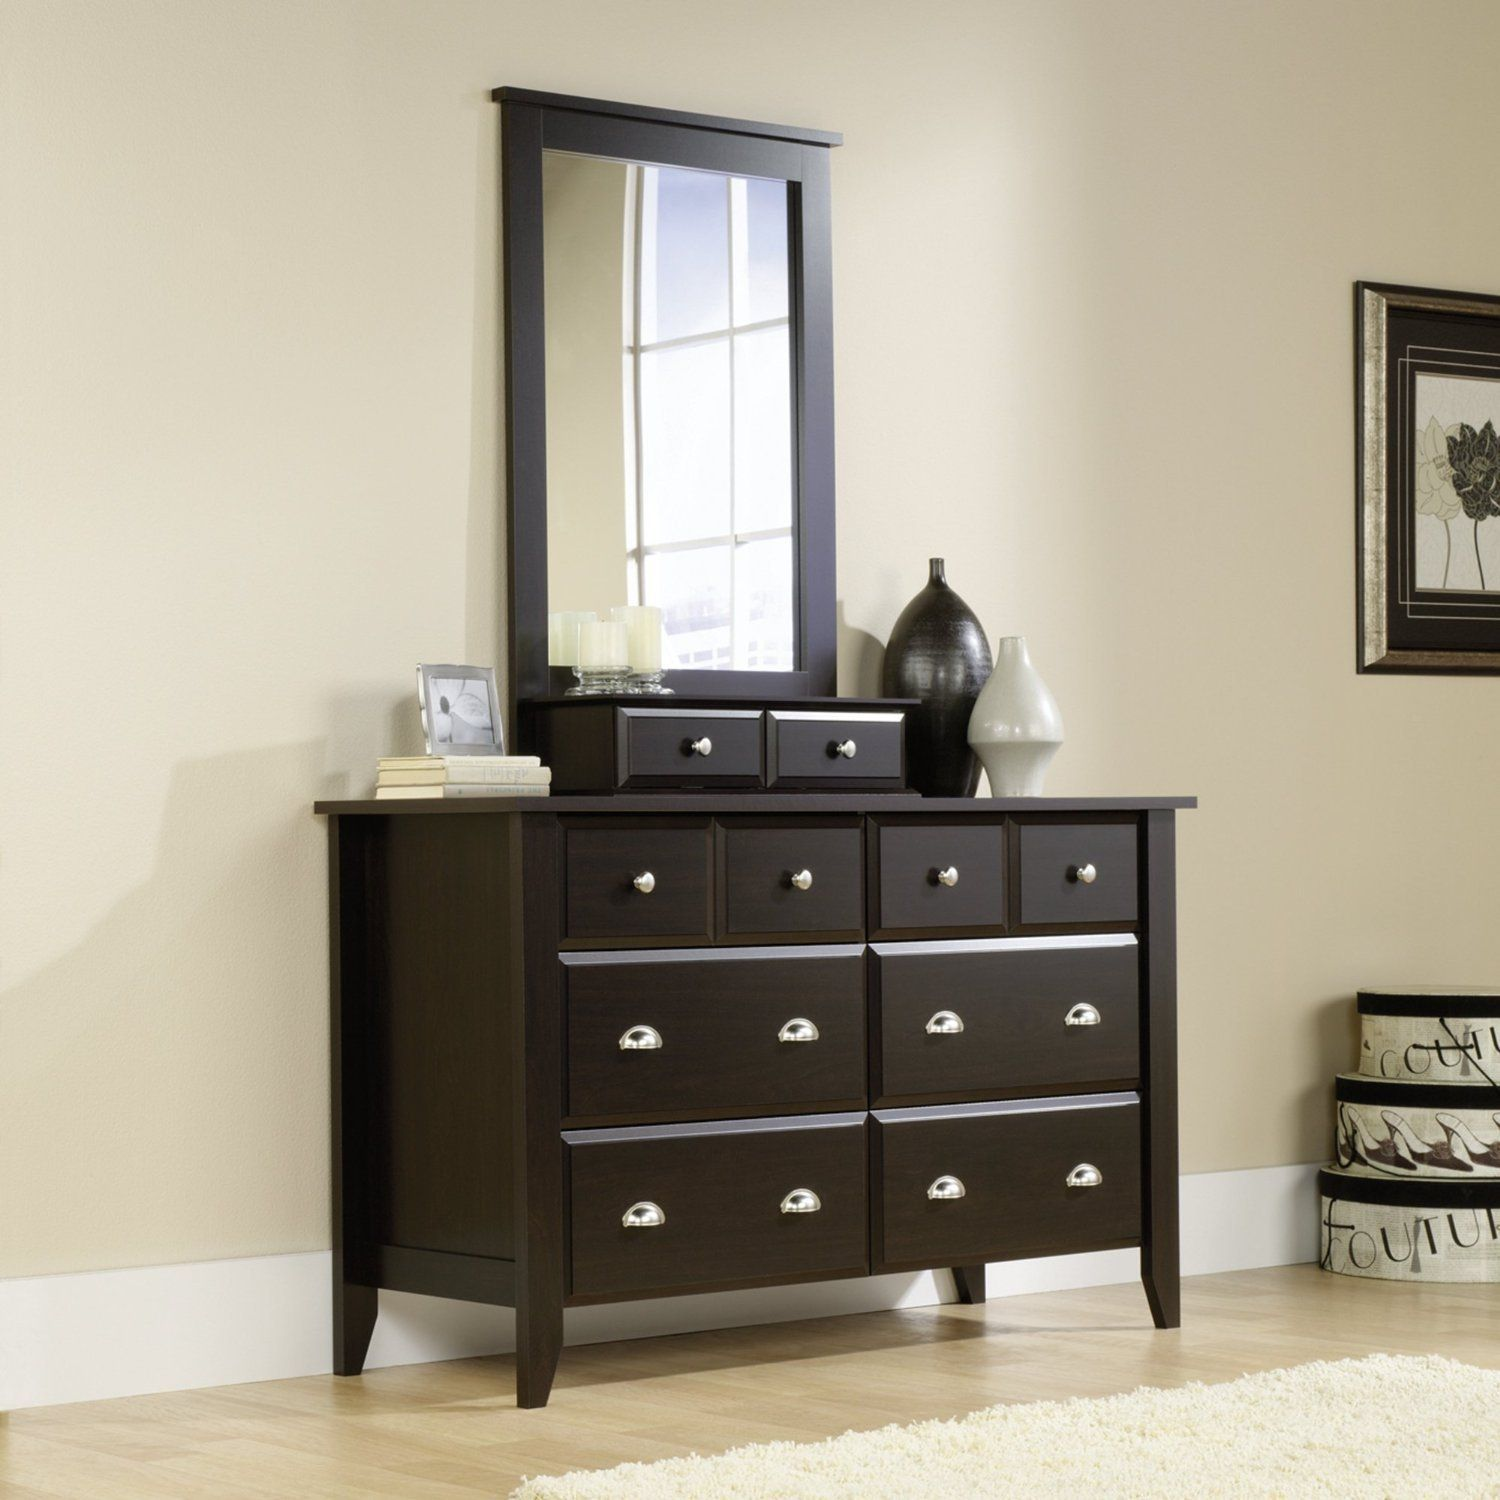 Pin by Ashley Belton on furniture | Dresser with mirror, Cherry ...